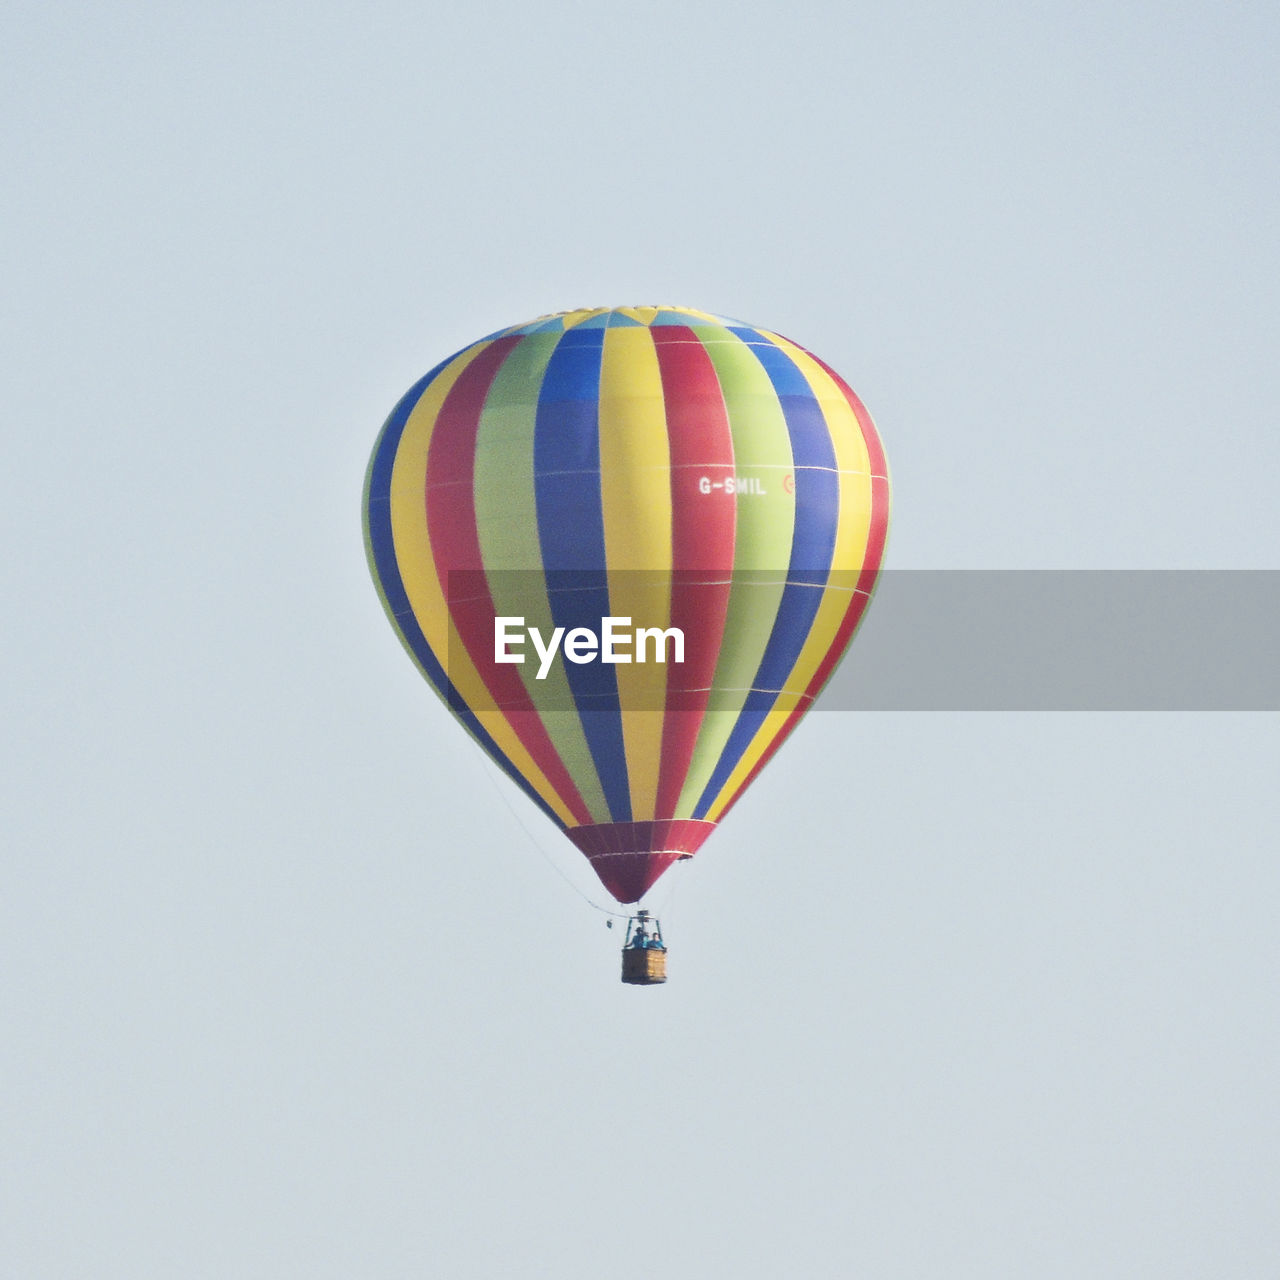 balloon, hot air balloon, air vehicle, multi colored, flying, mid-air, transportation, copy space, clear sky, adventure, sky, no people, nature, mode of transportation, pattern, studio shot, freedom, white background, outdoors, day, ballooning festival